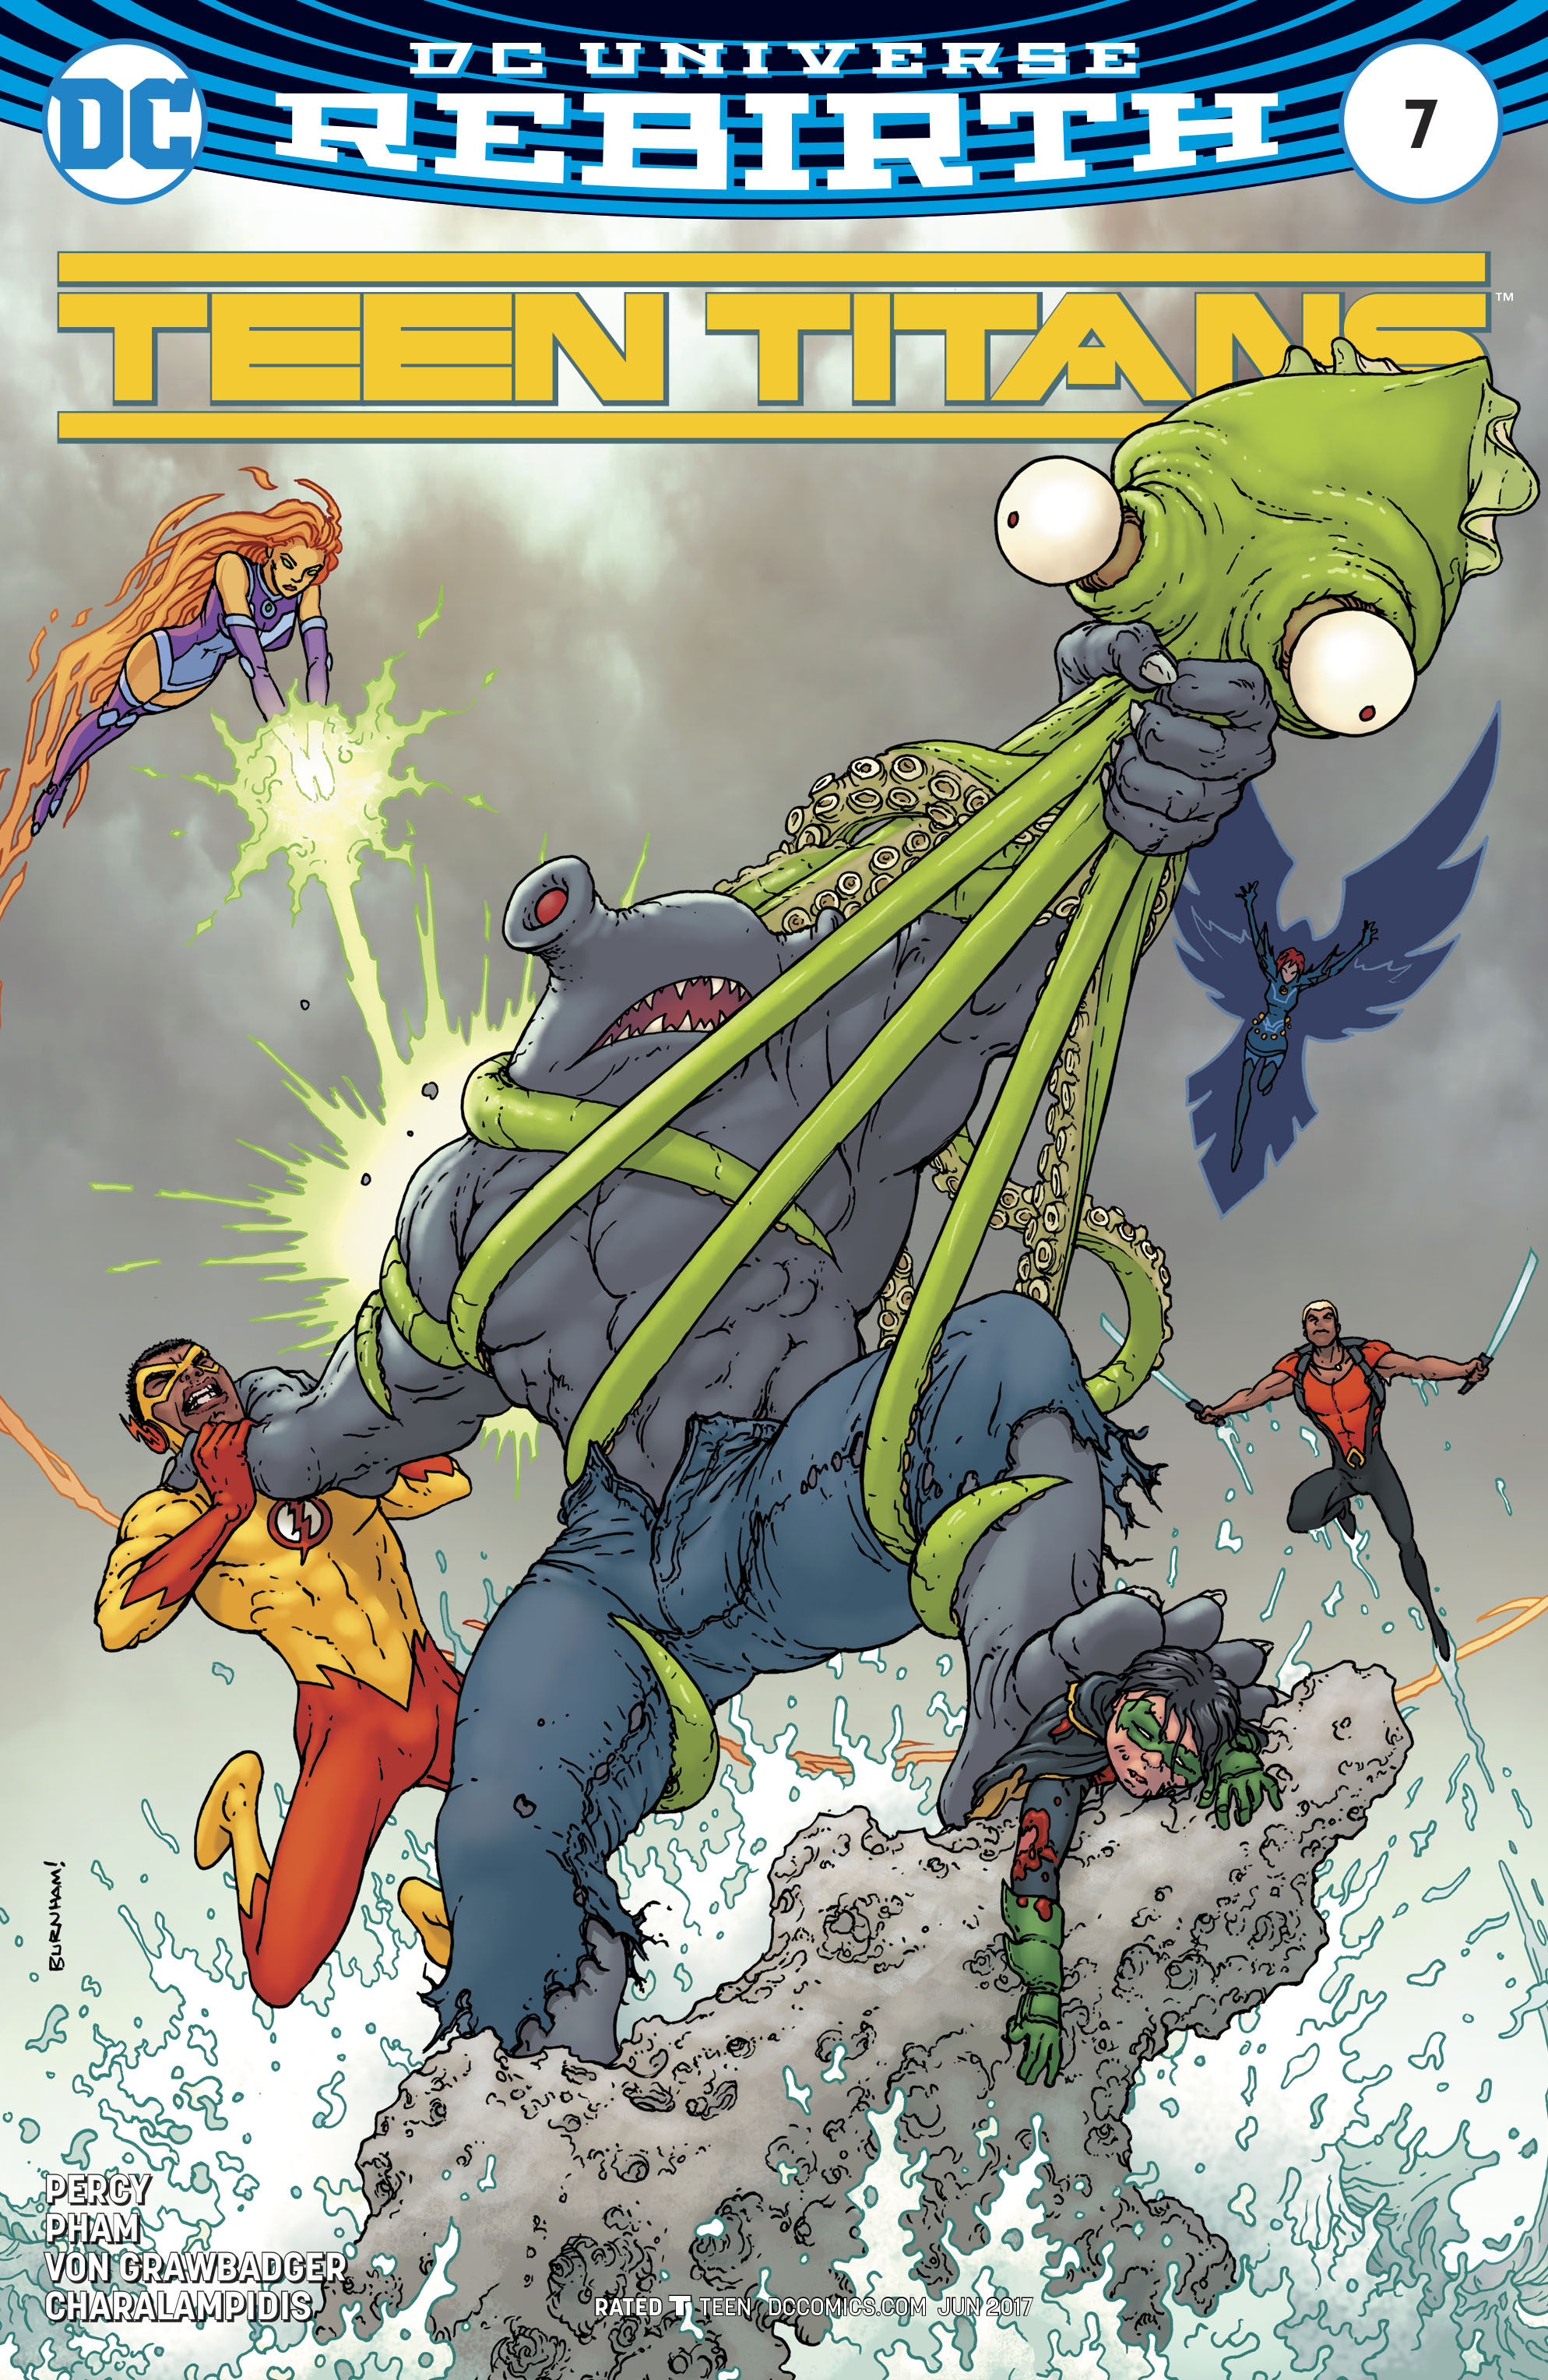 Read online Teen Titans (2016) comic -  Issue #7 - 2